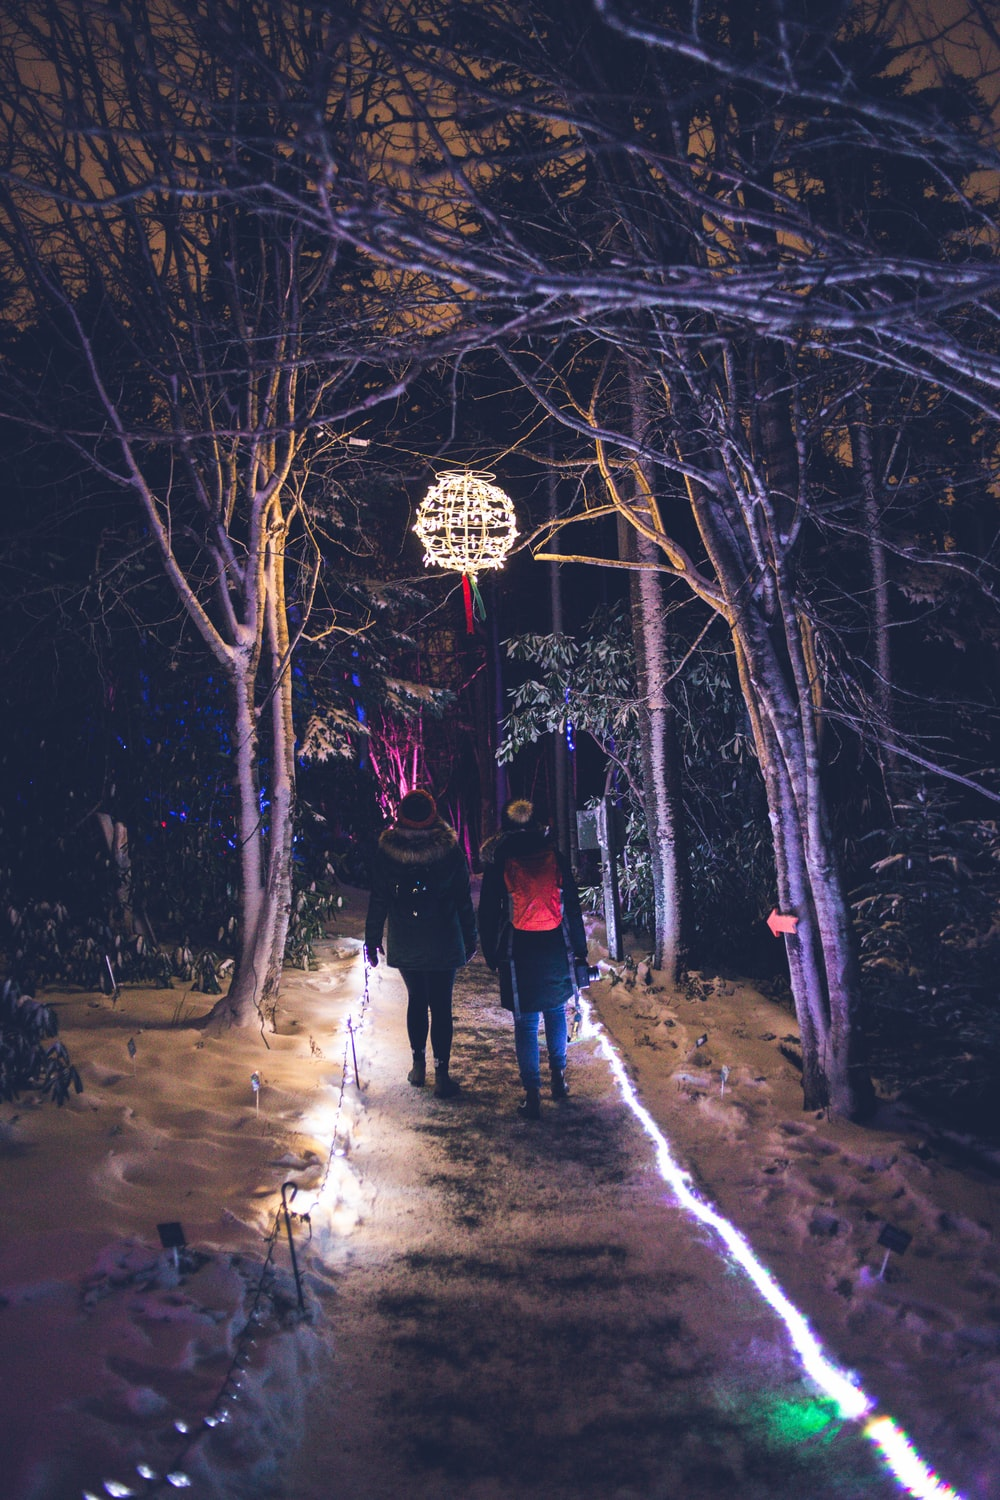 two people walking on pathway between trees at night